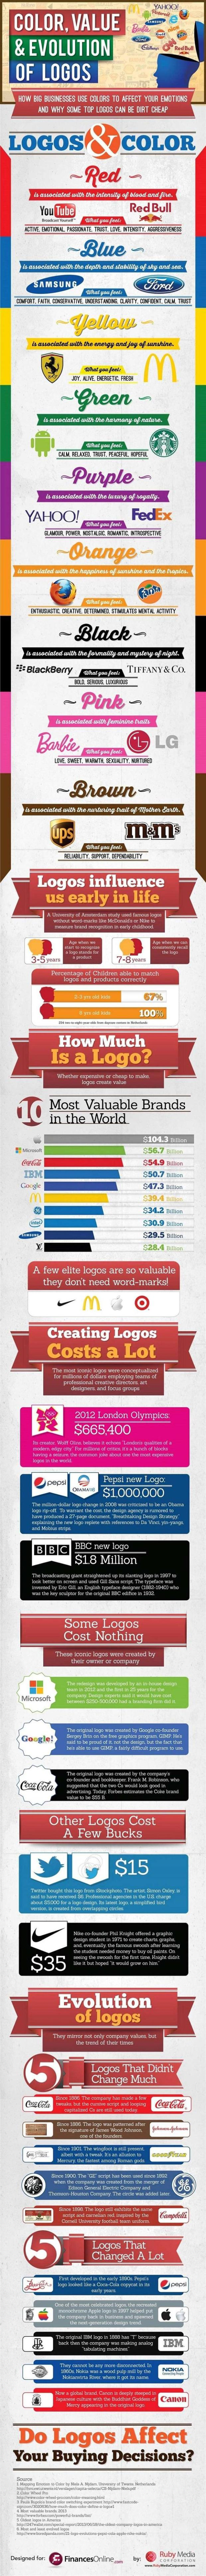 importance-of-color-in-logos